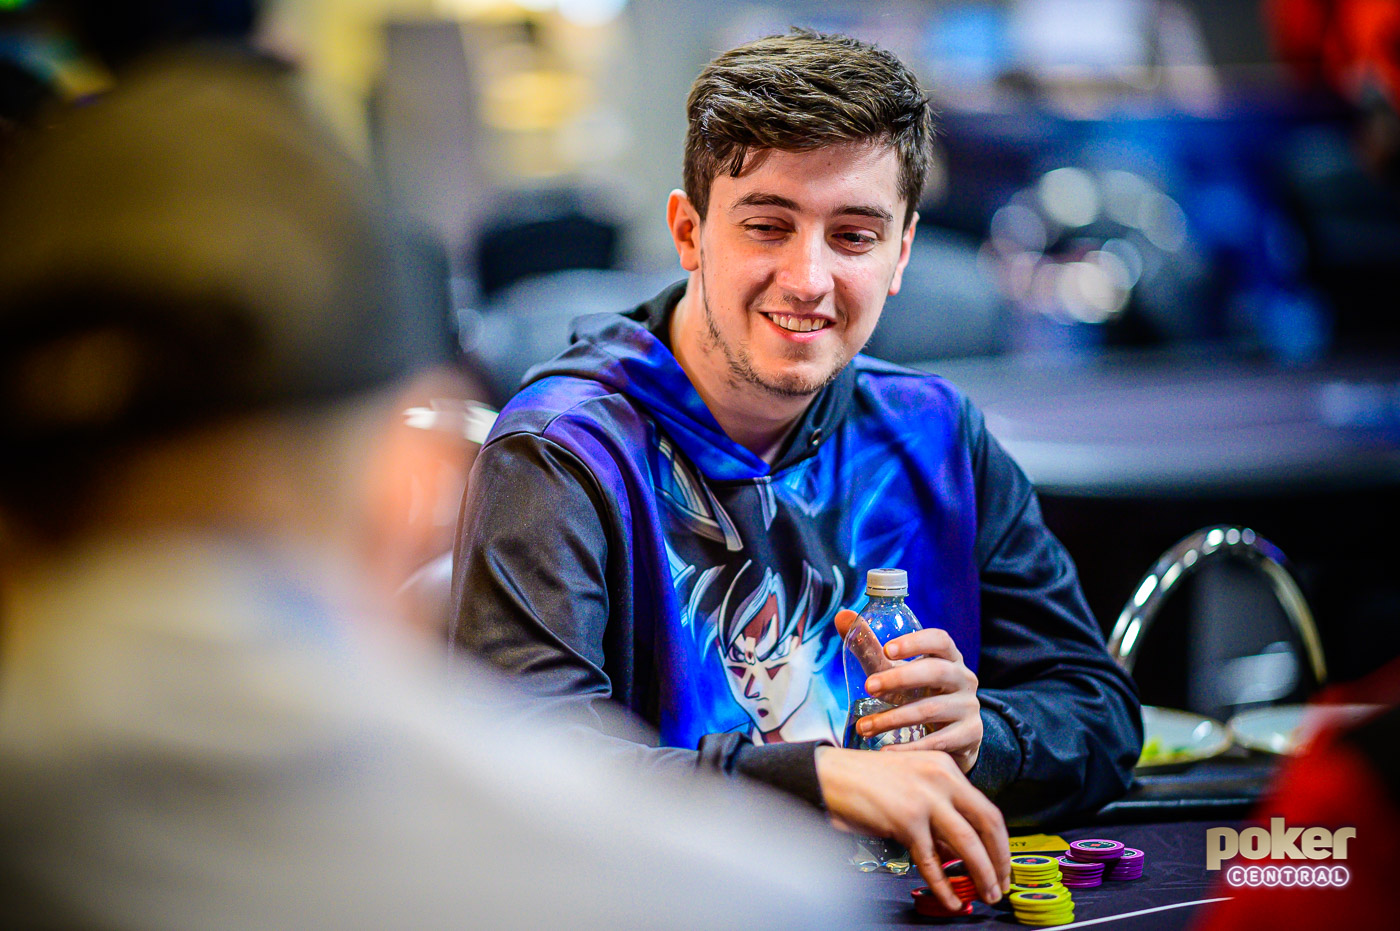 Reigning Poker Masters champion Ali Imsirovic during his first event of the British Poker Open.